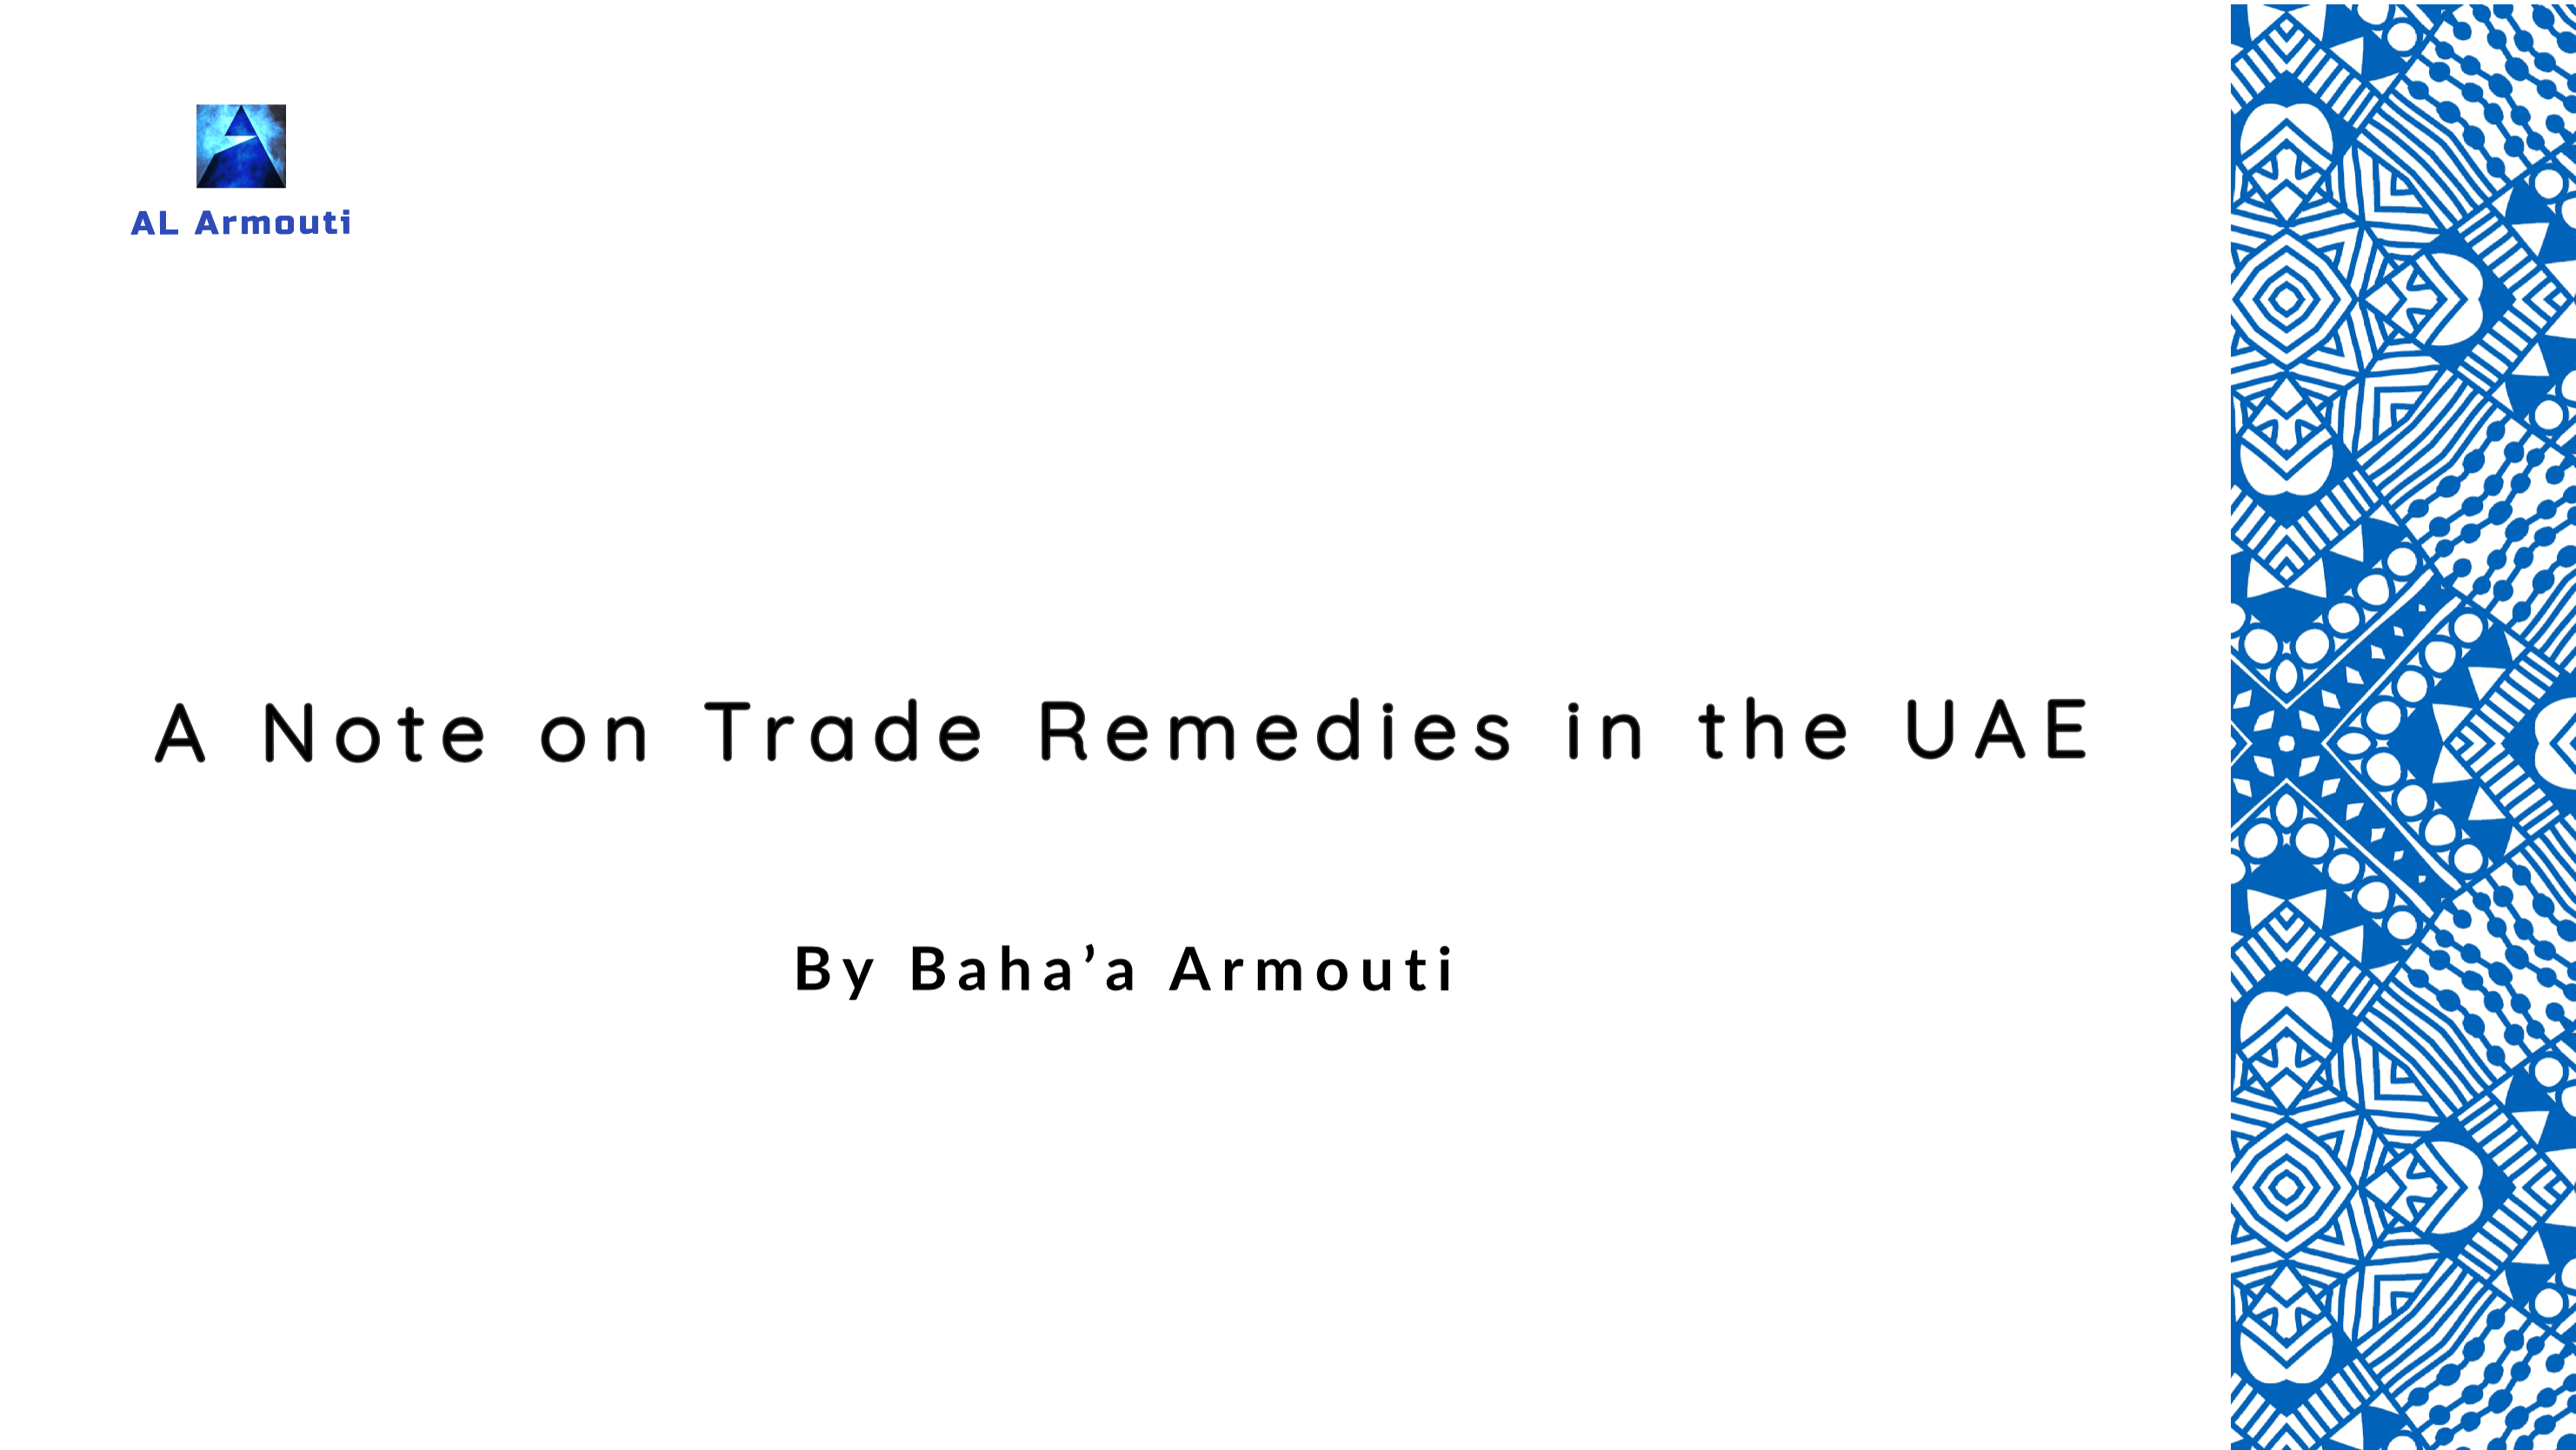 A Note On Trade Remedies In The UAE